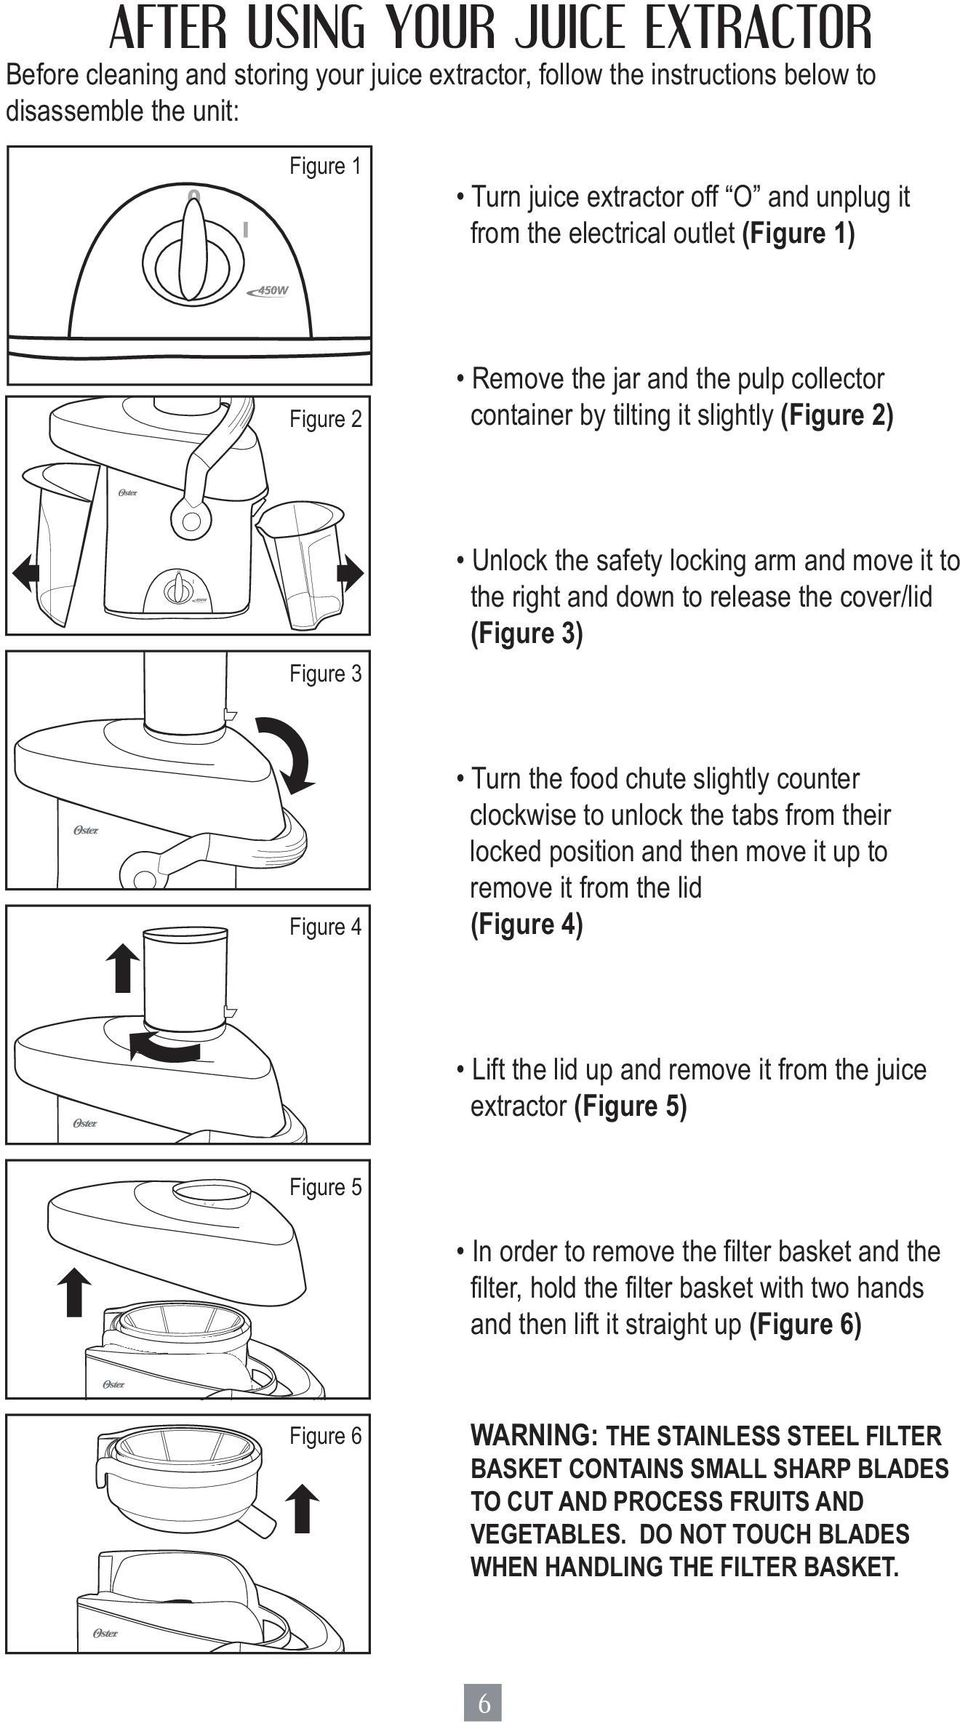 release the cover/lid (Figure 3) Figure 4 Turn the food chute slightly counter clockwise to unlock the tabs from their locked position and then move it up to remove it from the lid (Figure 4) Lift